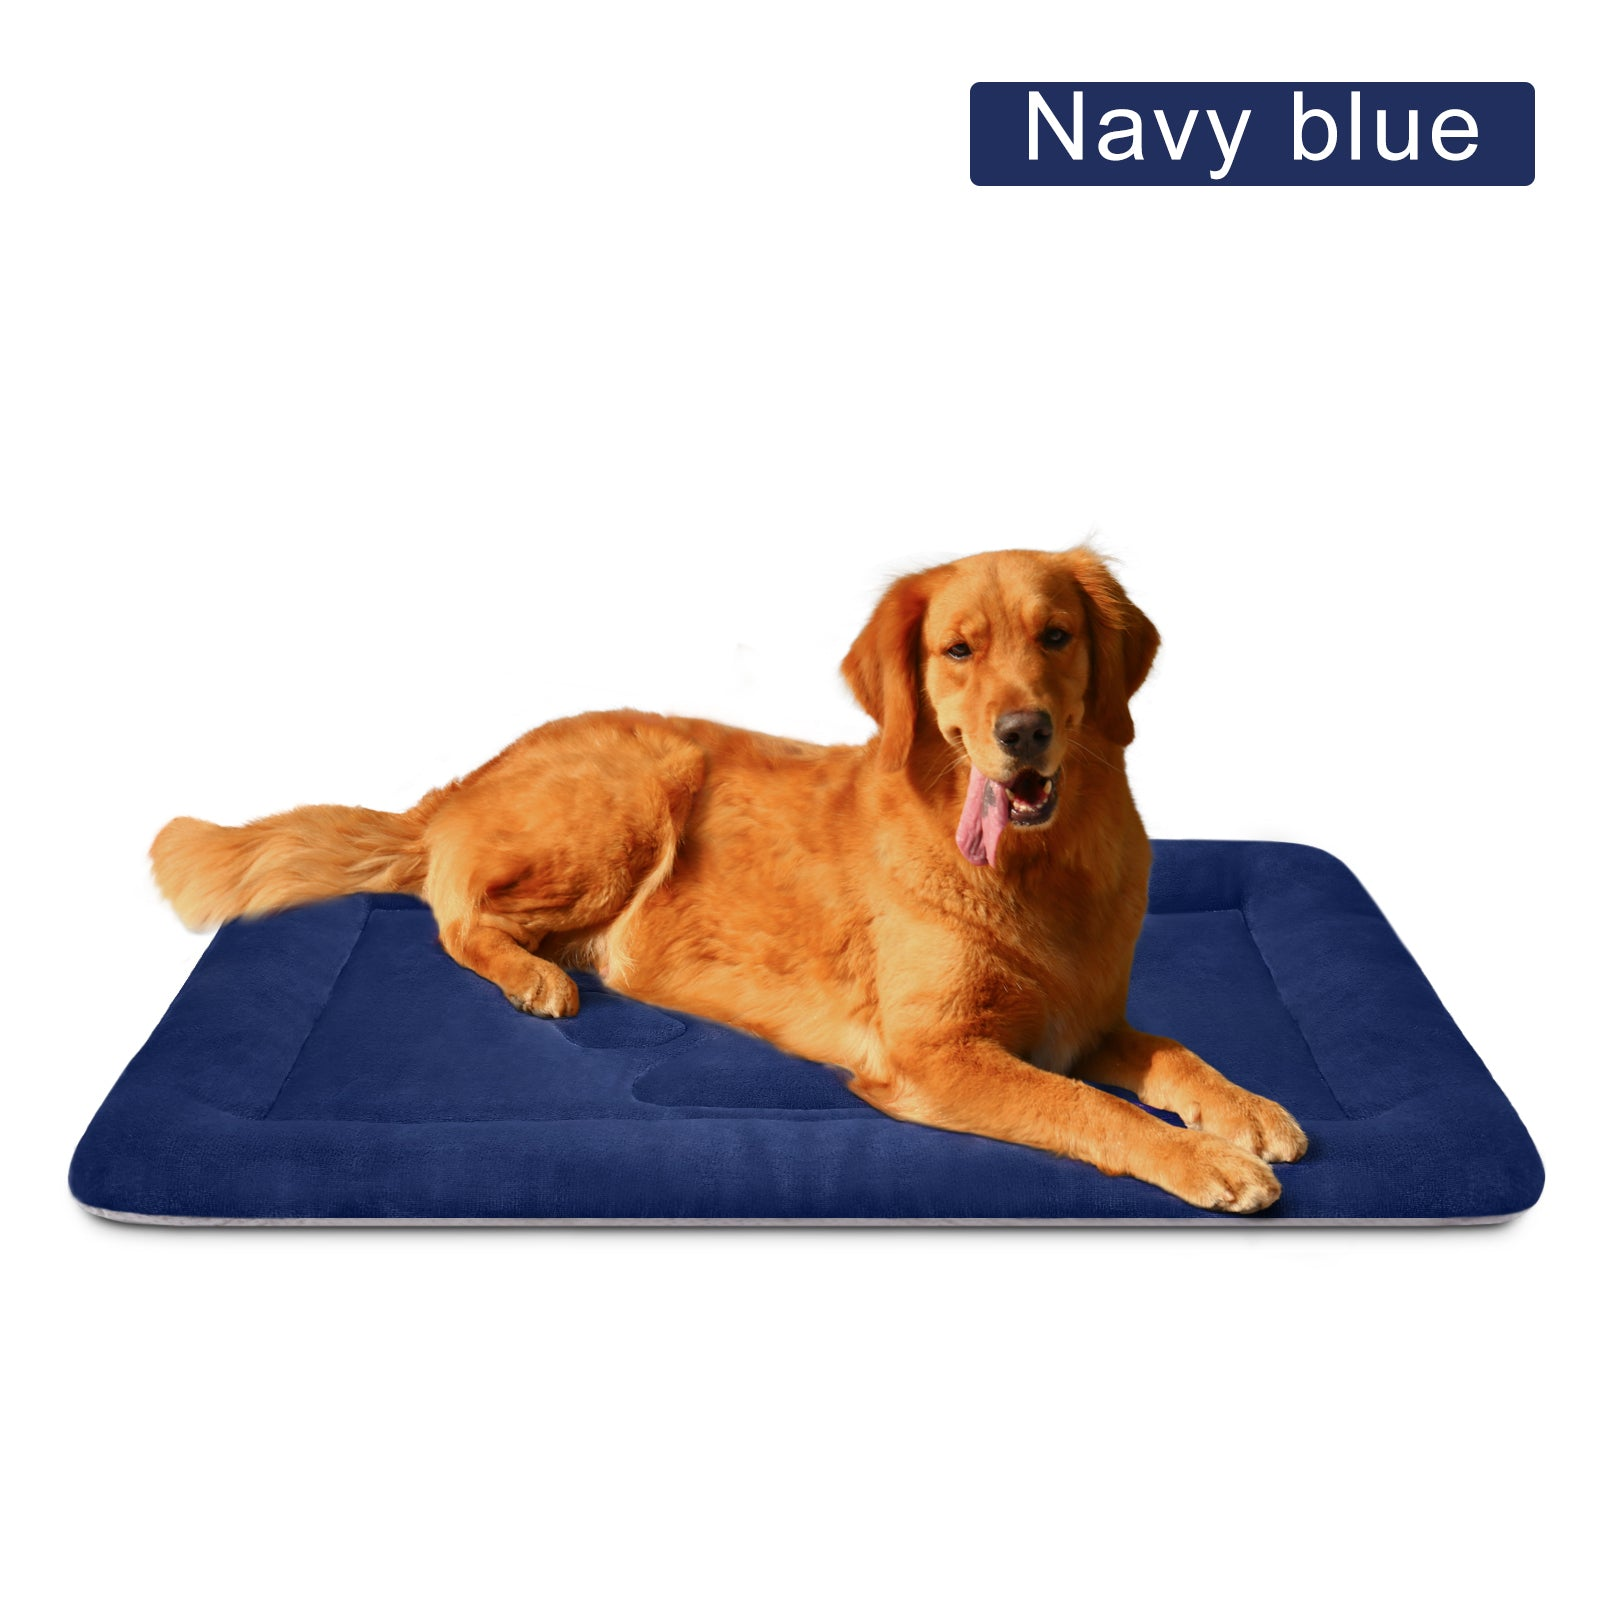 Large Dog Bed Mat Crate Pad 35/42/47 Inch Washable Pet Beds Soft Anti Slip Sleeping Mattress for Large Medium Small Dogs, Multi Color